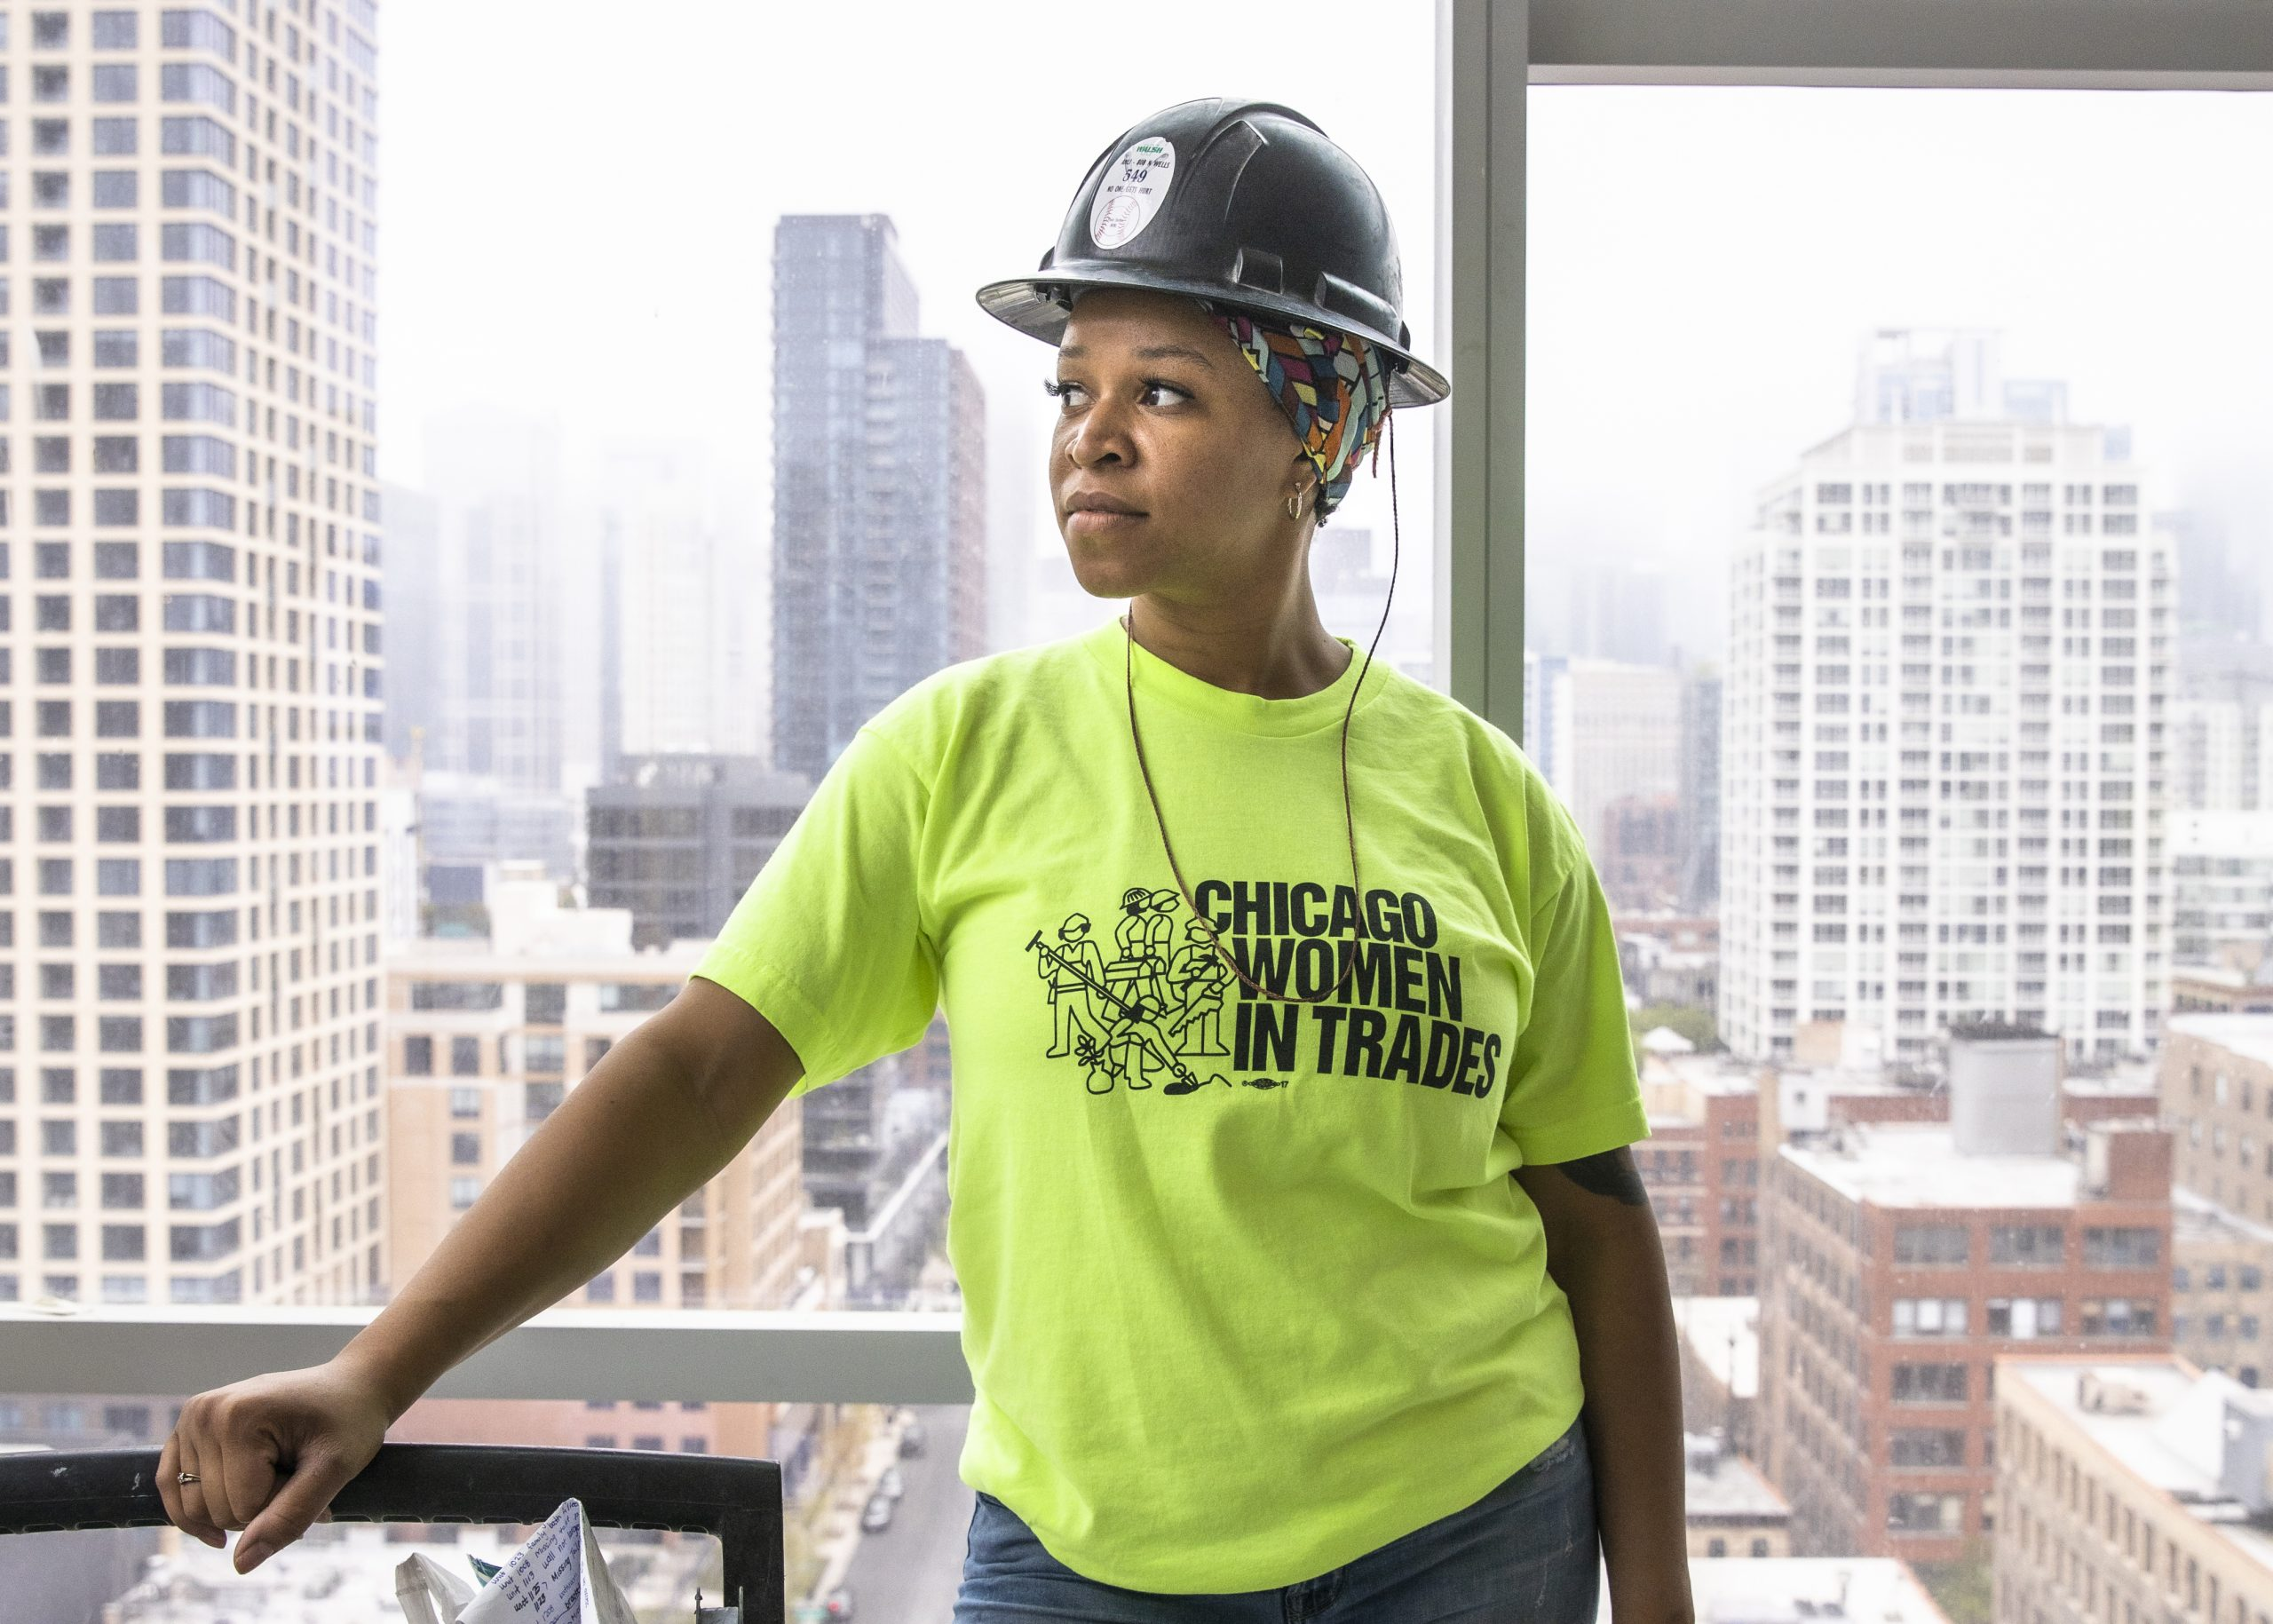 Zahrah Hill looks to the horizon wearing a hard hat and neon green shirt.